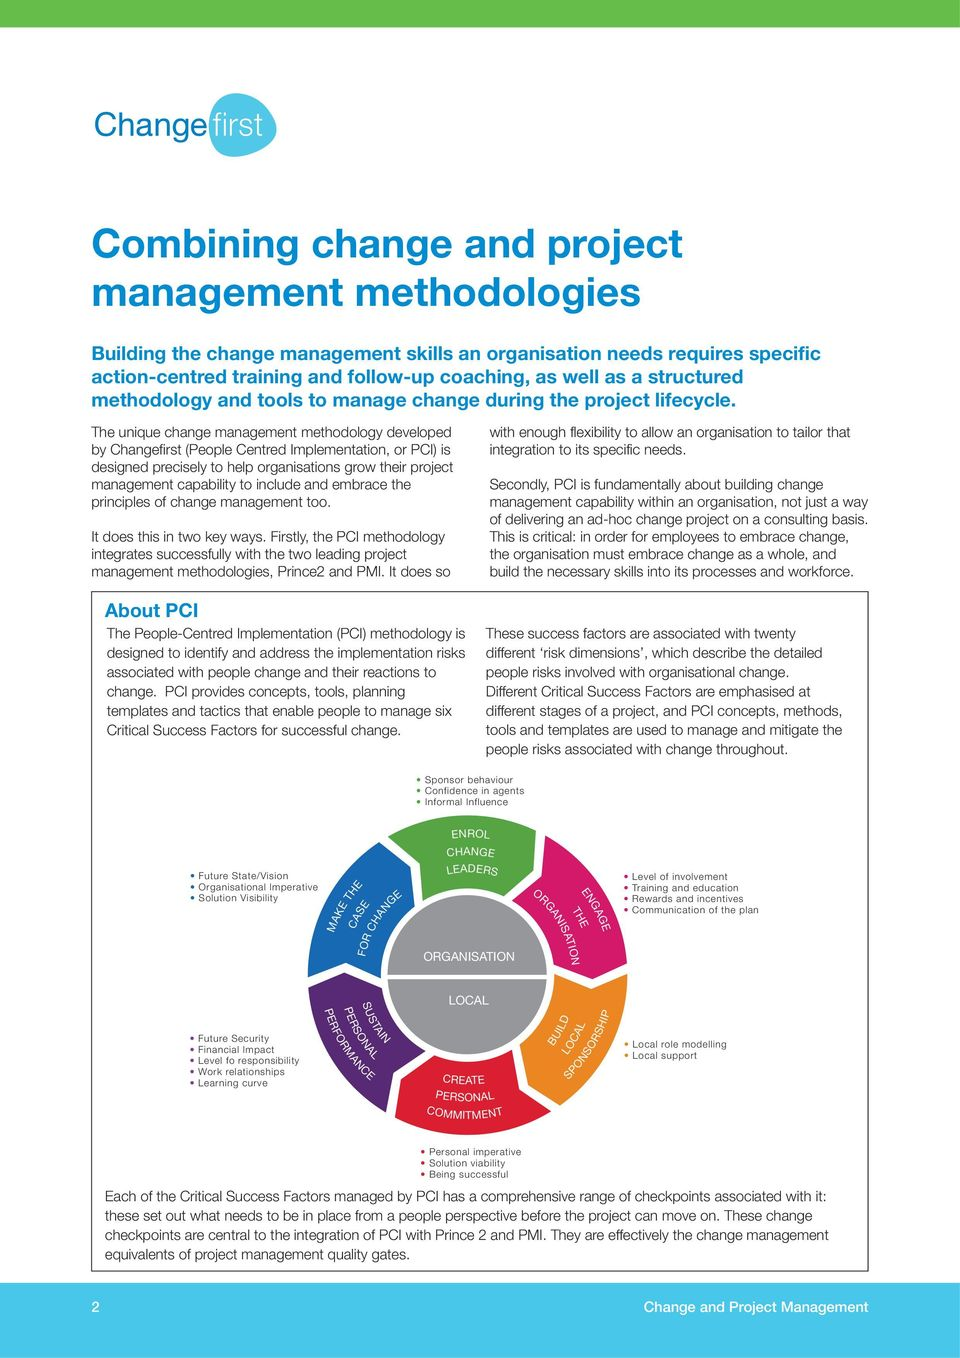 The unique management methodology developed by Changefirst (People Centred Implementation, or PCI) is designed precisely to help organisations grow their project management capability to include and